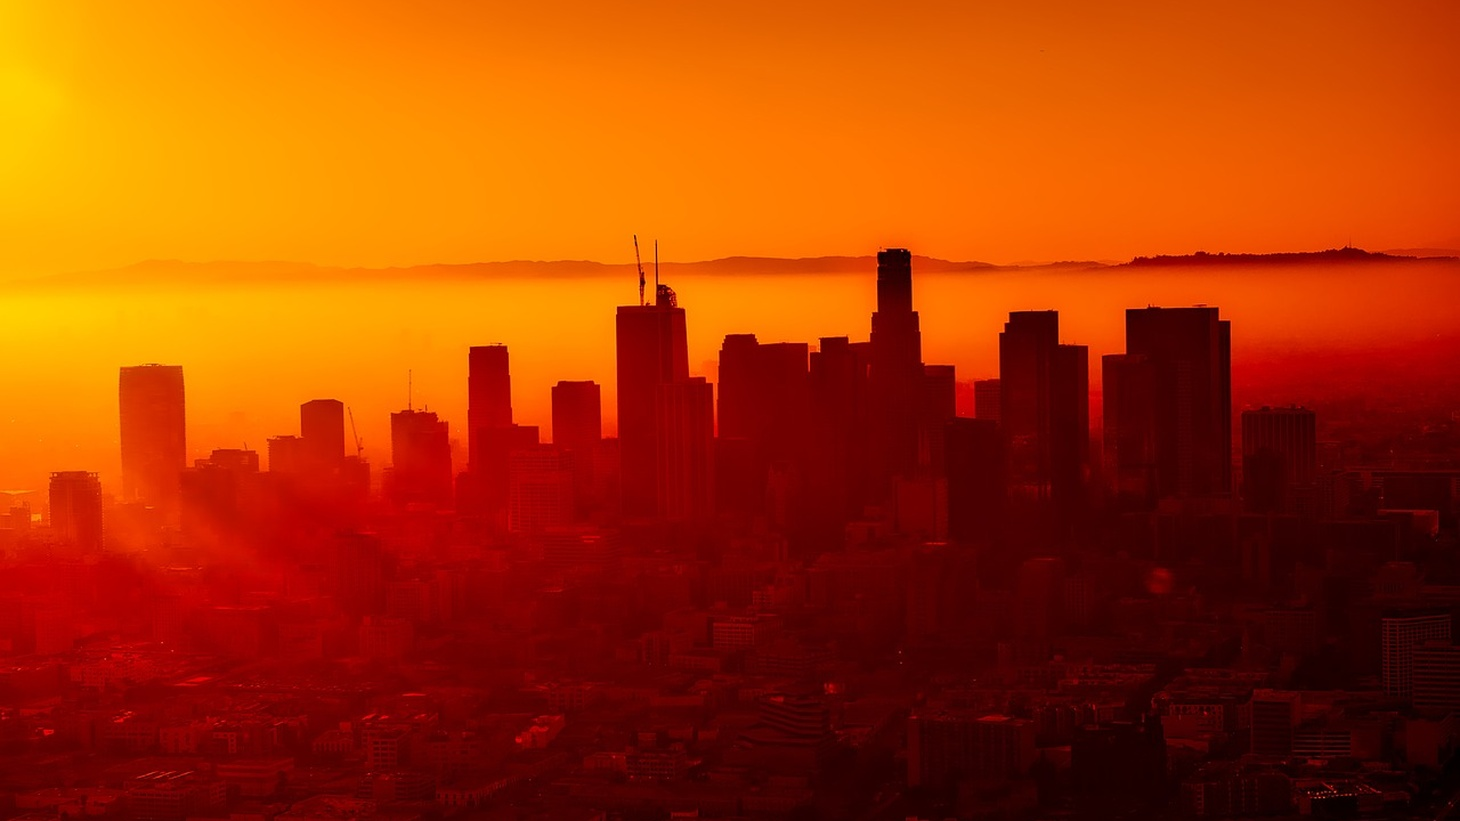 Los Angeles in a heat wave.